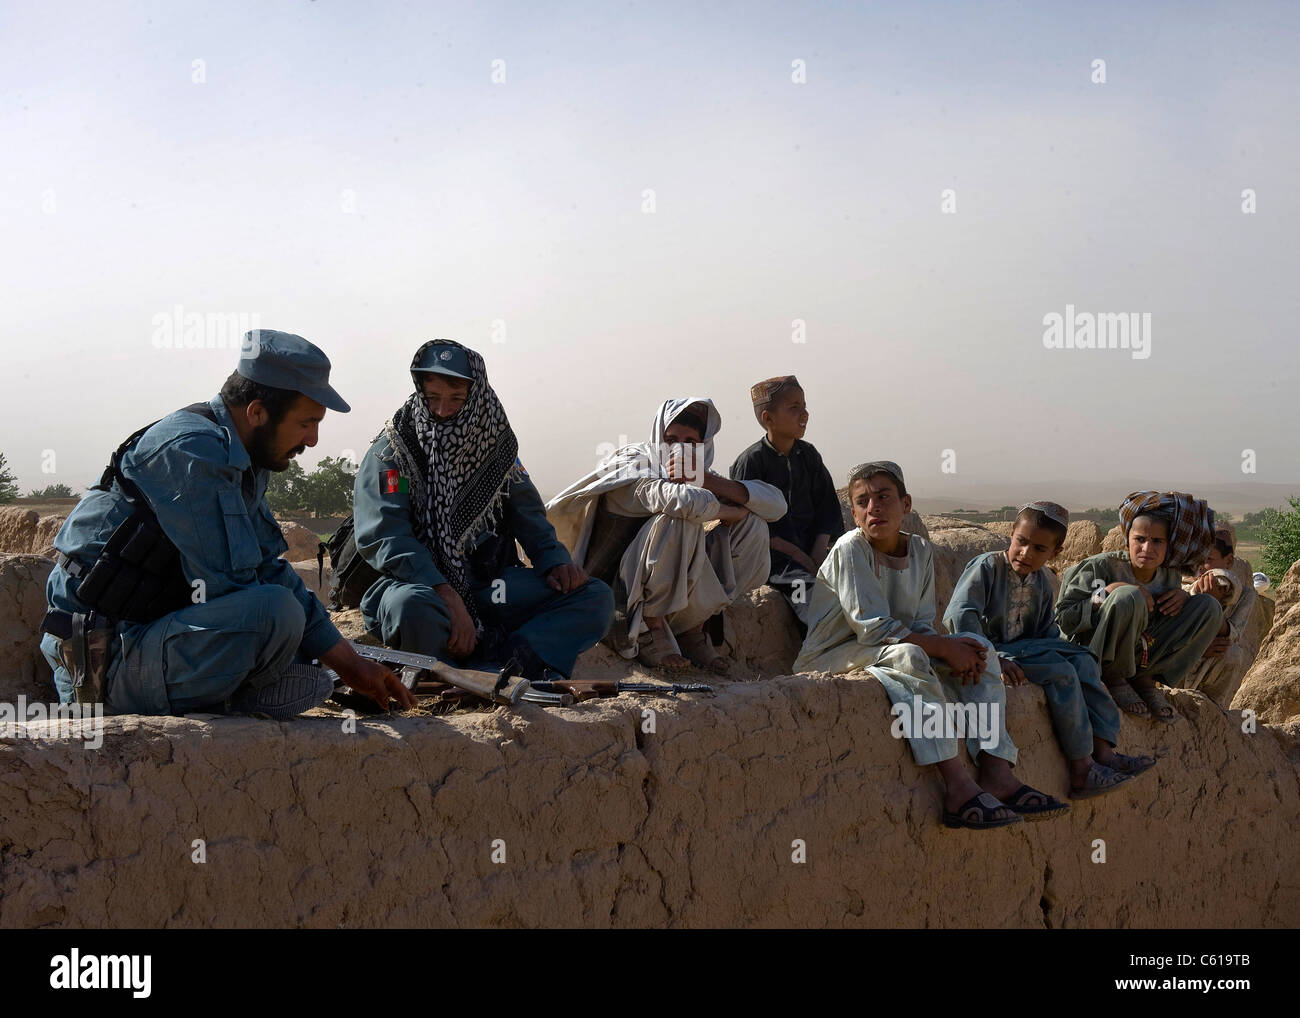 Members of the Afghan national police speak with Afghan children during a clearing operation in Khakrez district, Stock Photo